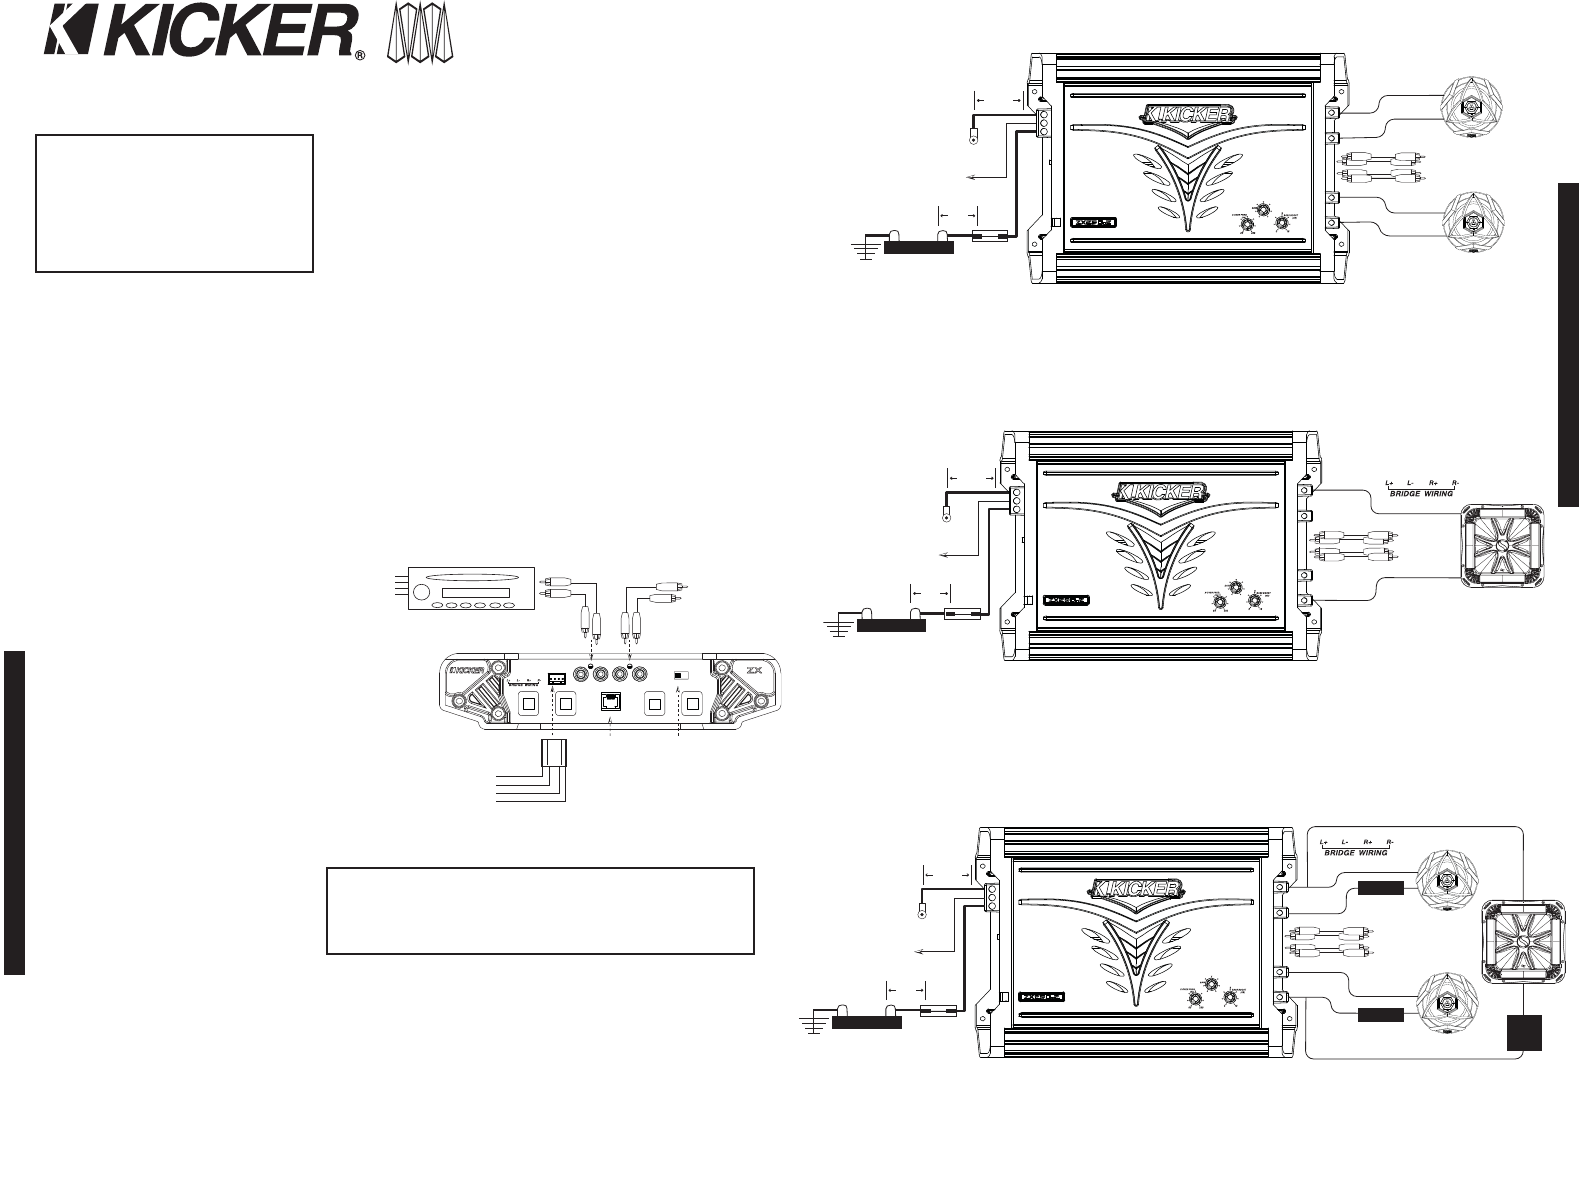 Kicker Hs8 Wiring Diagram